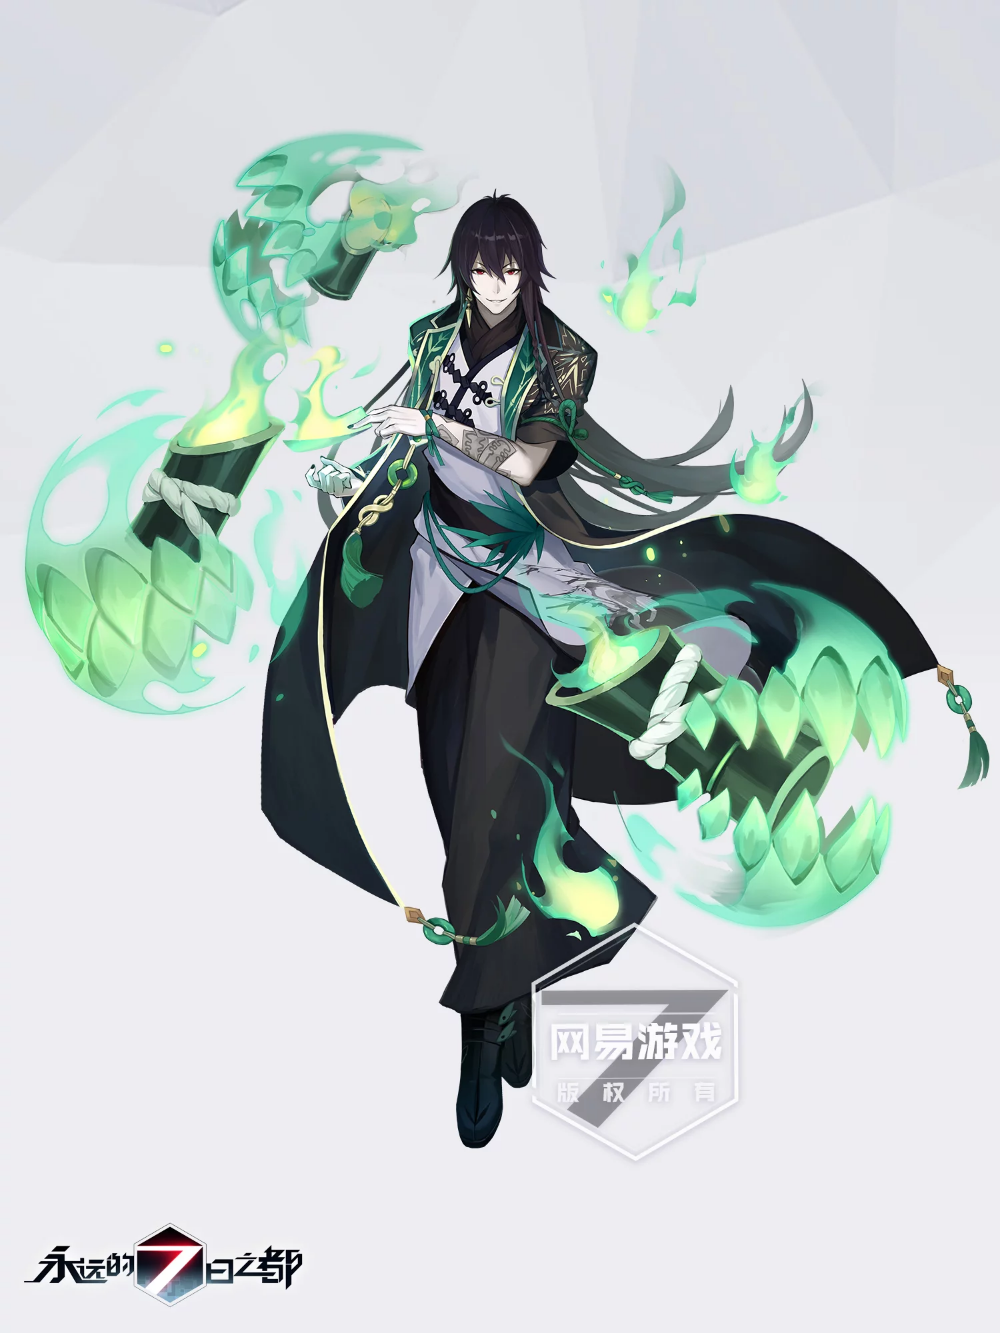 Pin By Amy Evans On D D Resources Characters Anime Character Design Fantasy Character Design Game Character Design